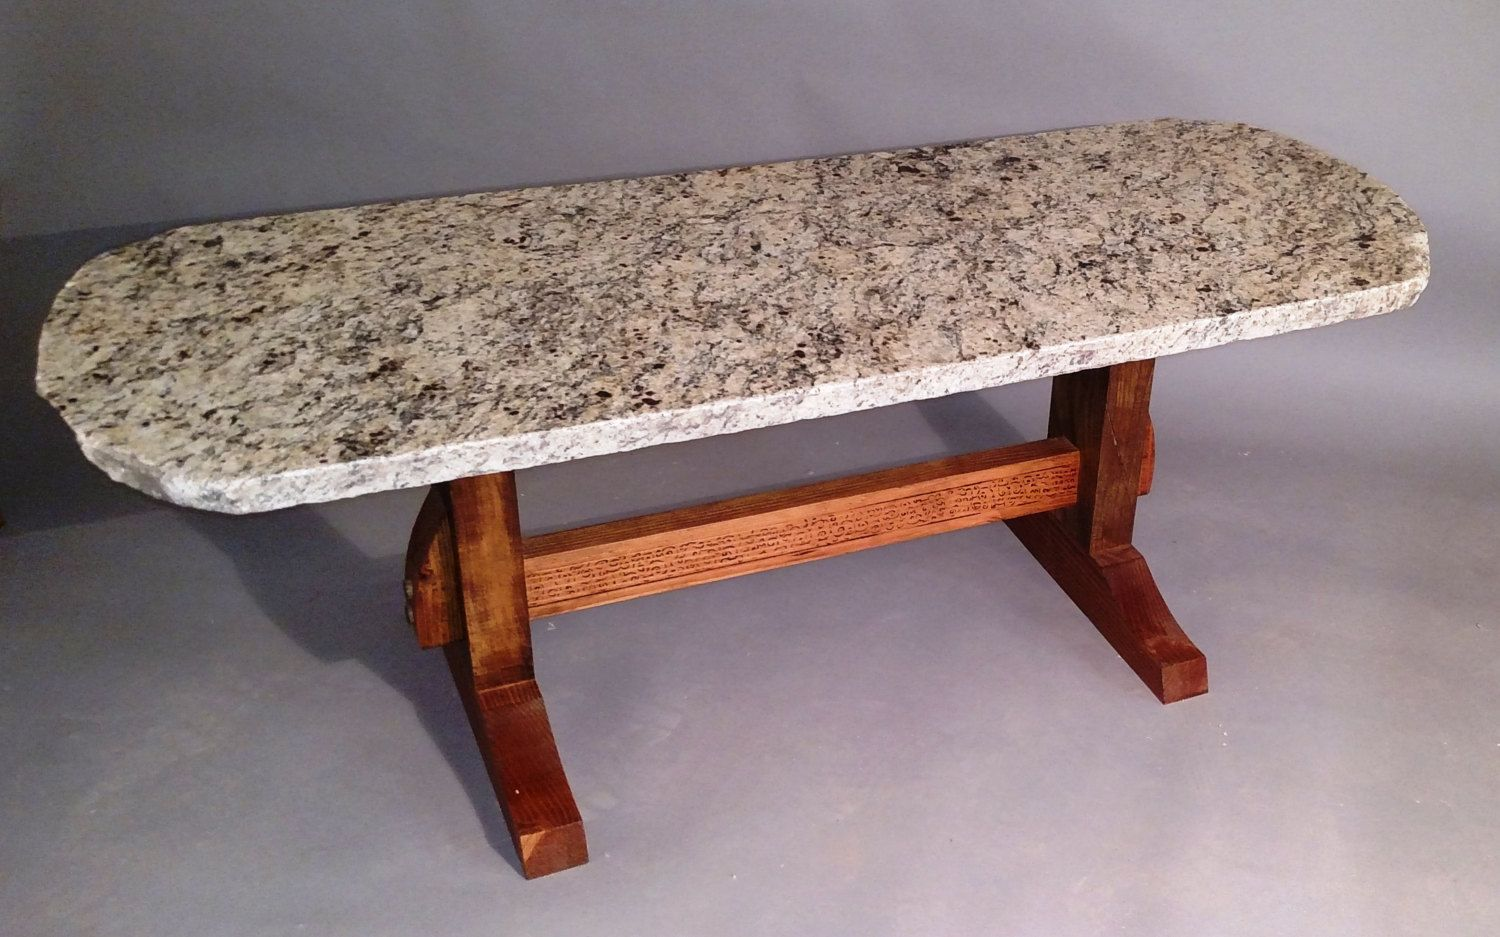 Granite Natural Edge Coffee Table with Pyrographic Designs,granite table,stone table,trestle table,pyrography,rustic,modern,handmade table by SpearheadFurniture on Etsy